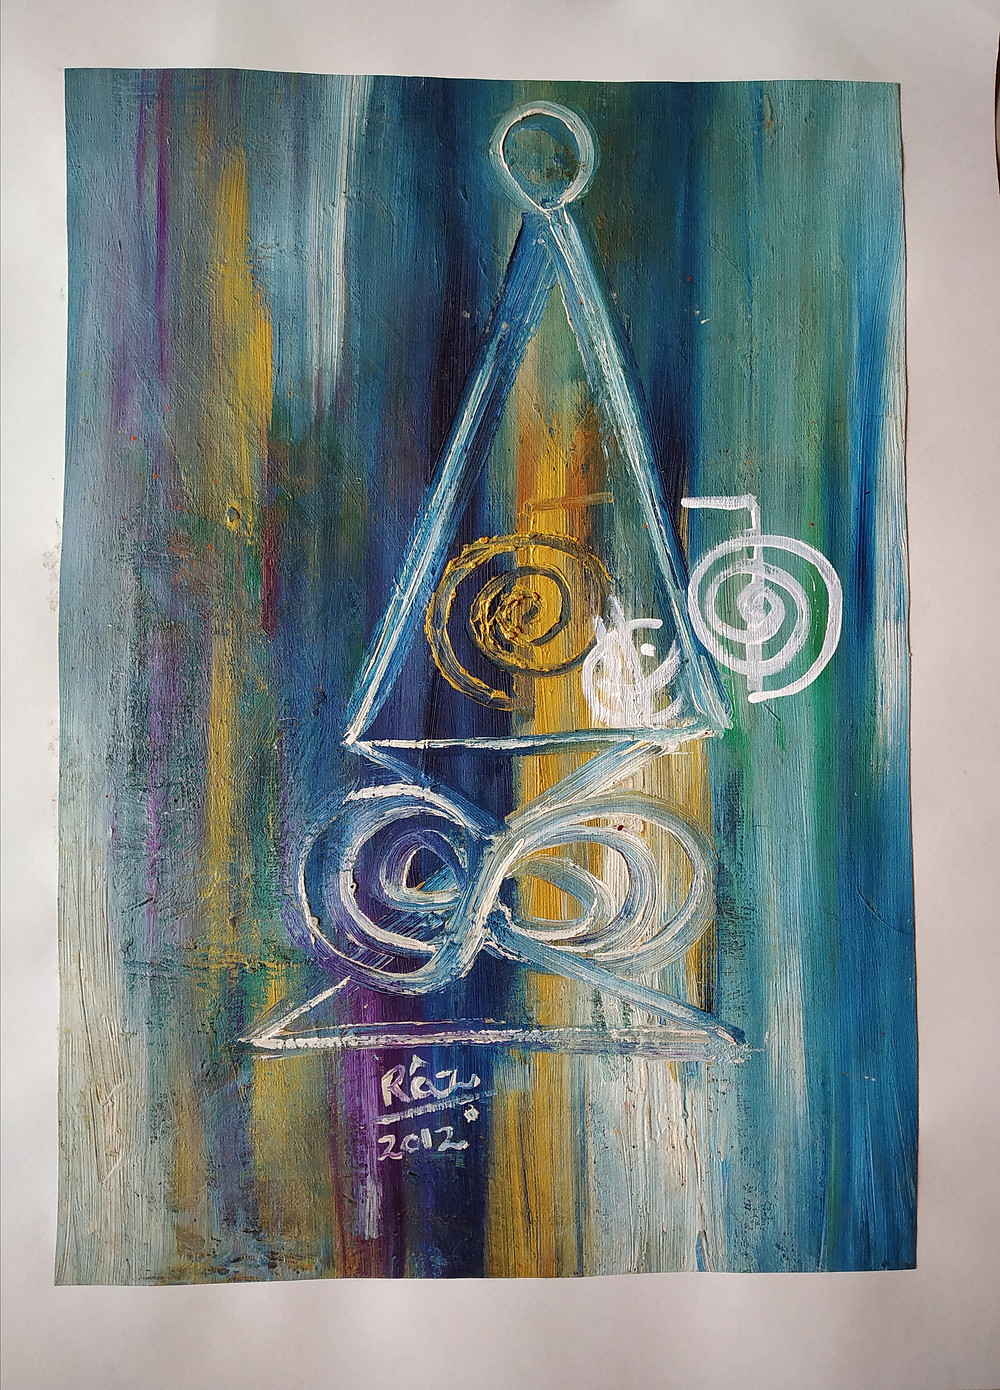 Halu reiki painting for sale ! 11x15 inches on art paper.